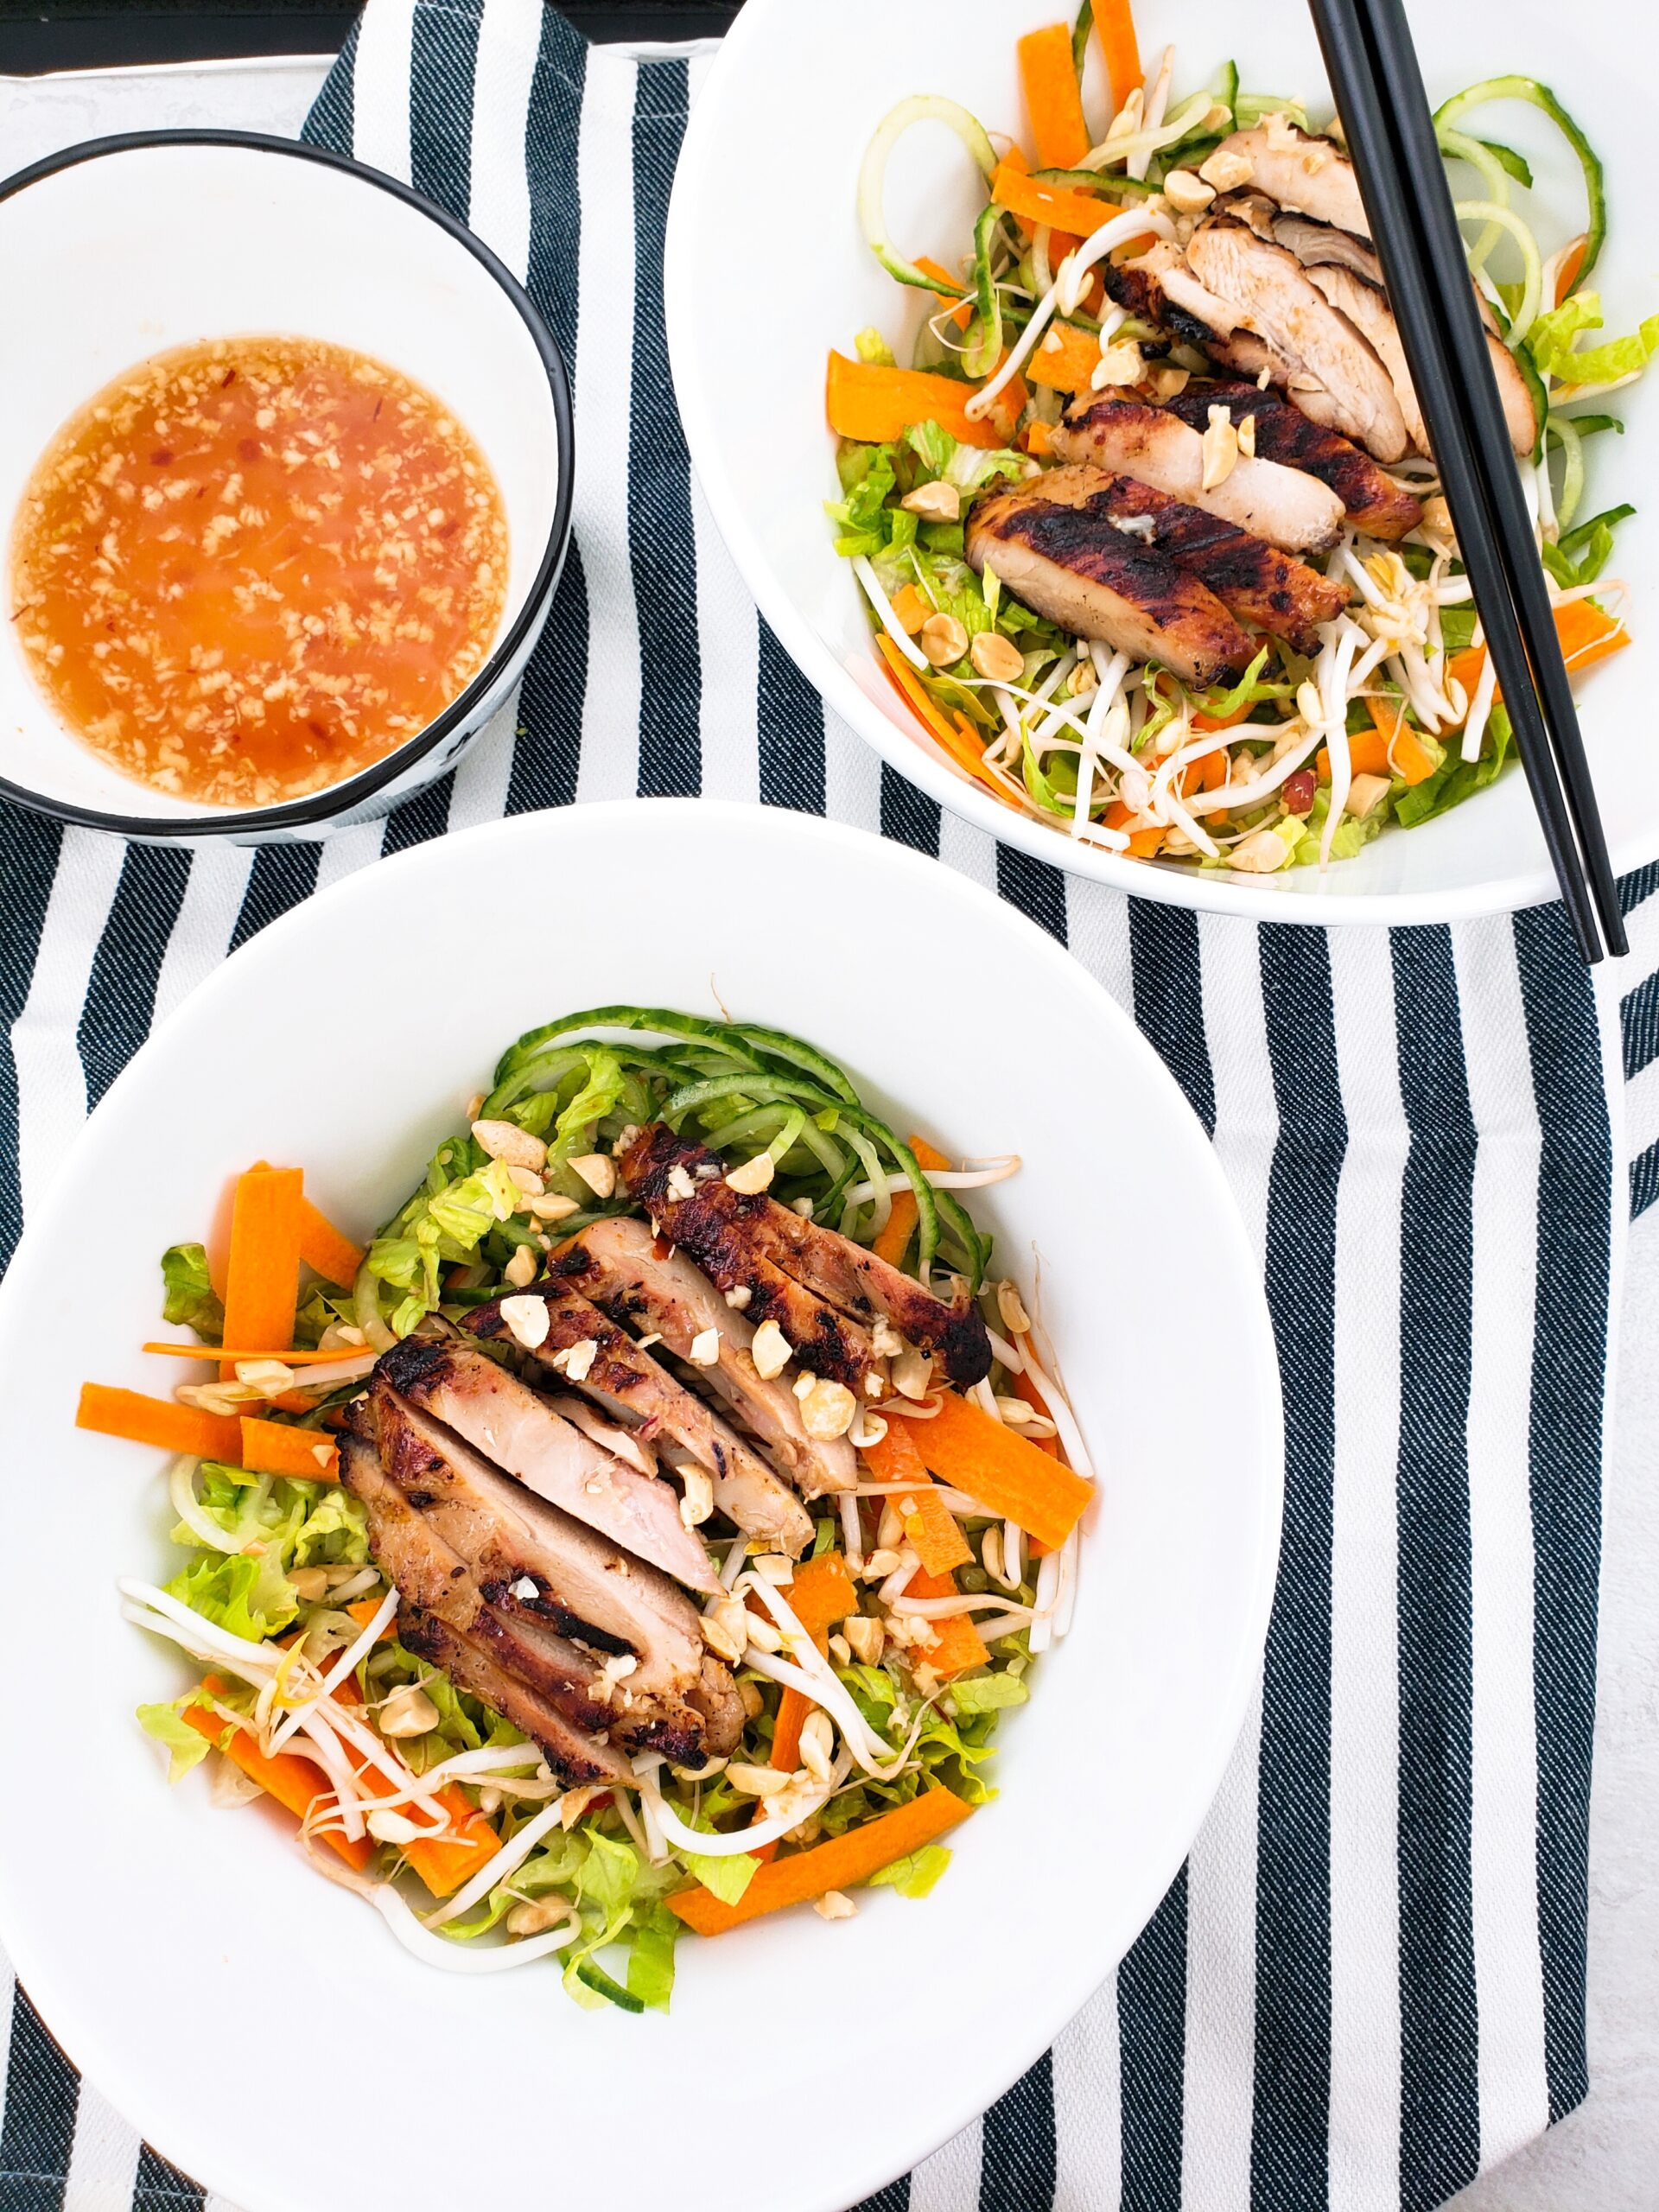 Vietnamese Lemongrass Chicken Salad Noshing To Talk About